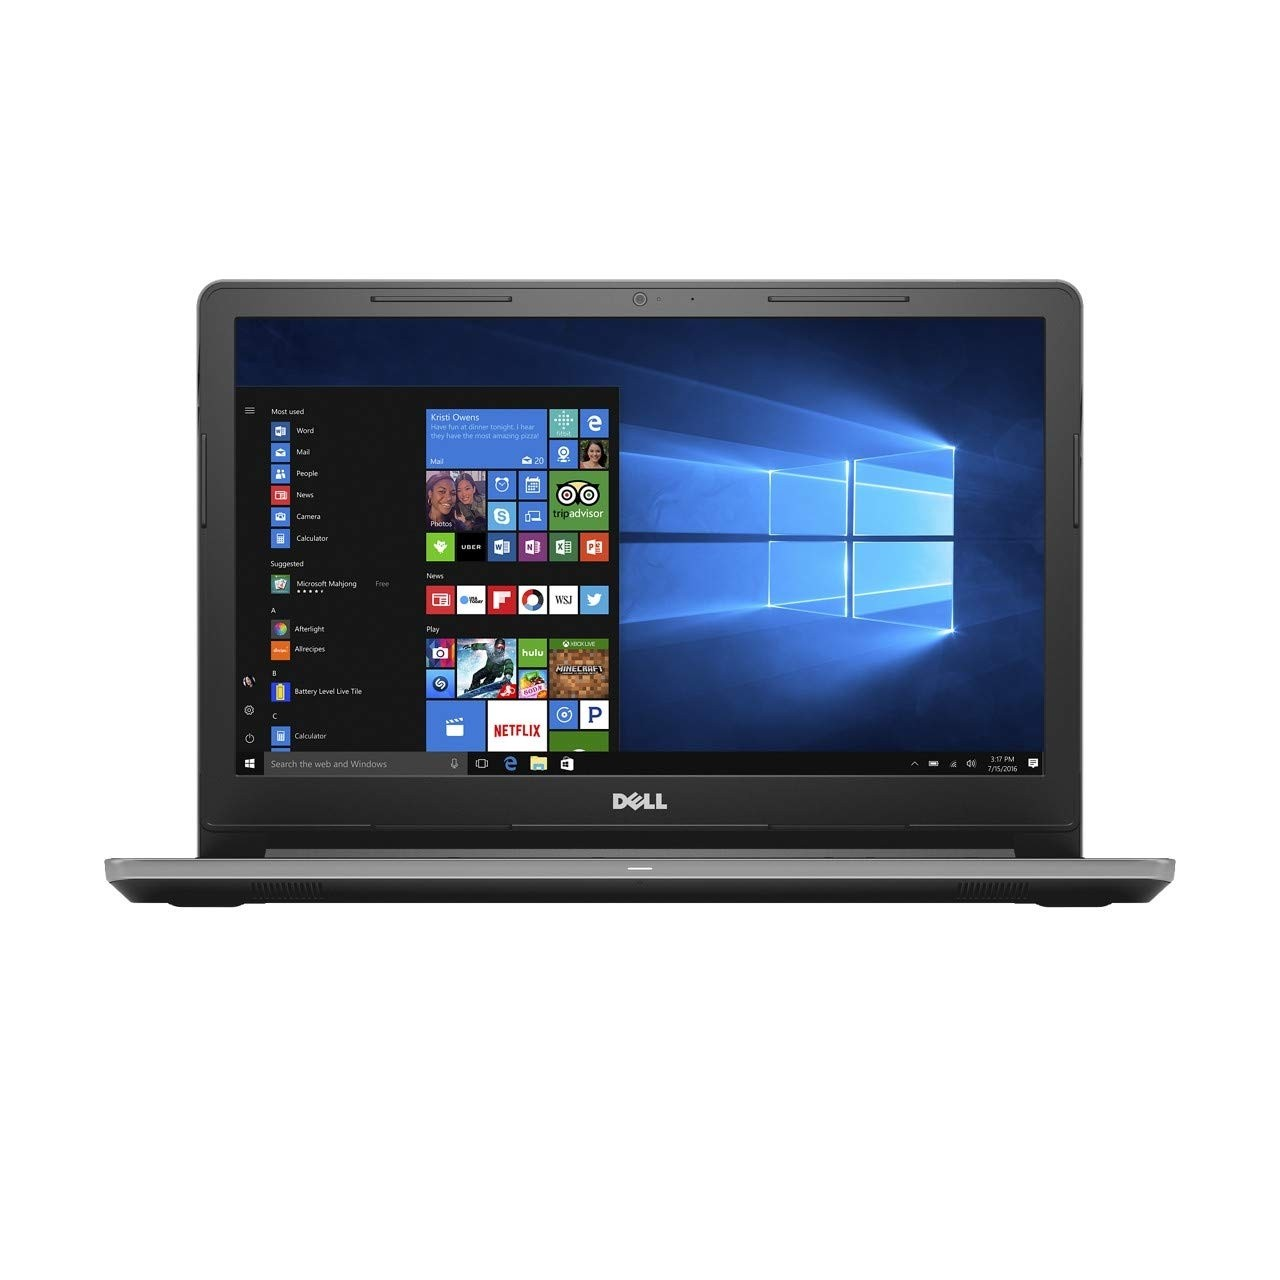 Refurbished laptops & desktops - Dell Vostro 15 3000 Core I3 6Th Gen - (4 GB/1 TB HDD/Windows 10 Home) 3568 Laptop